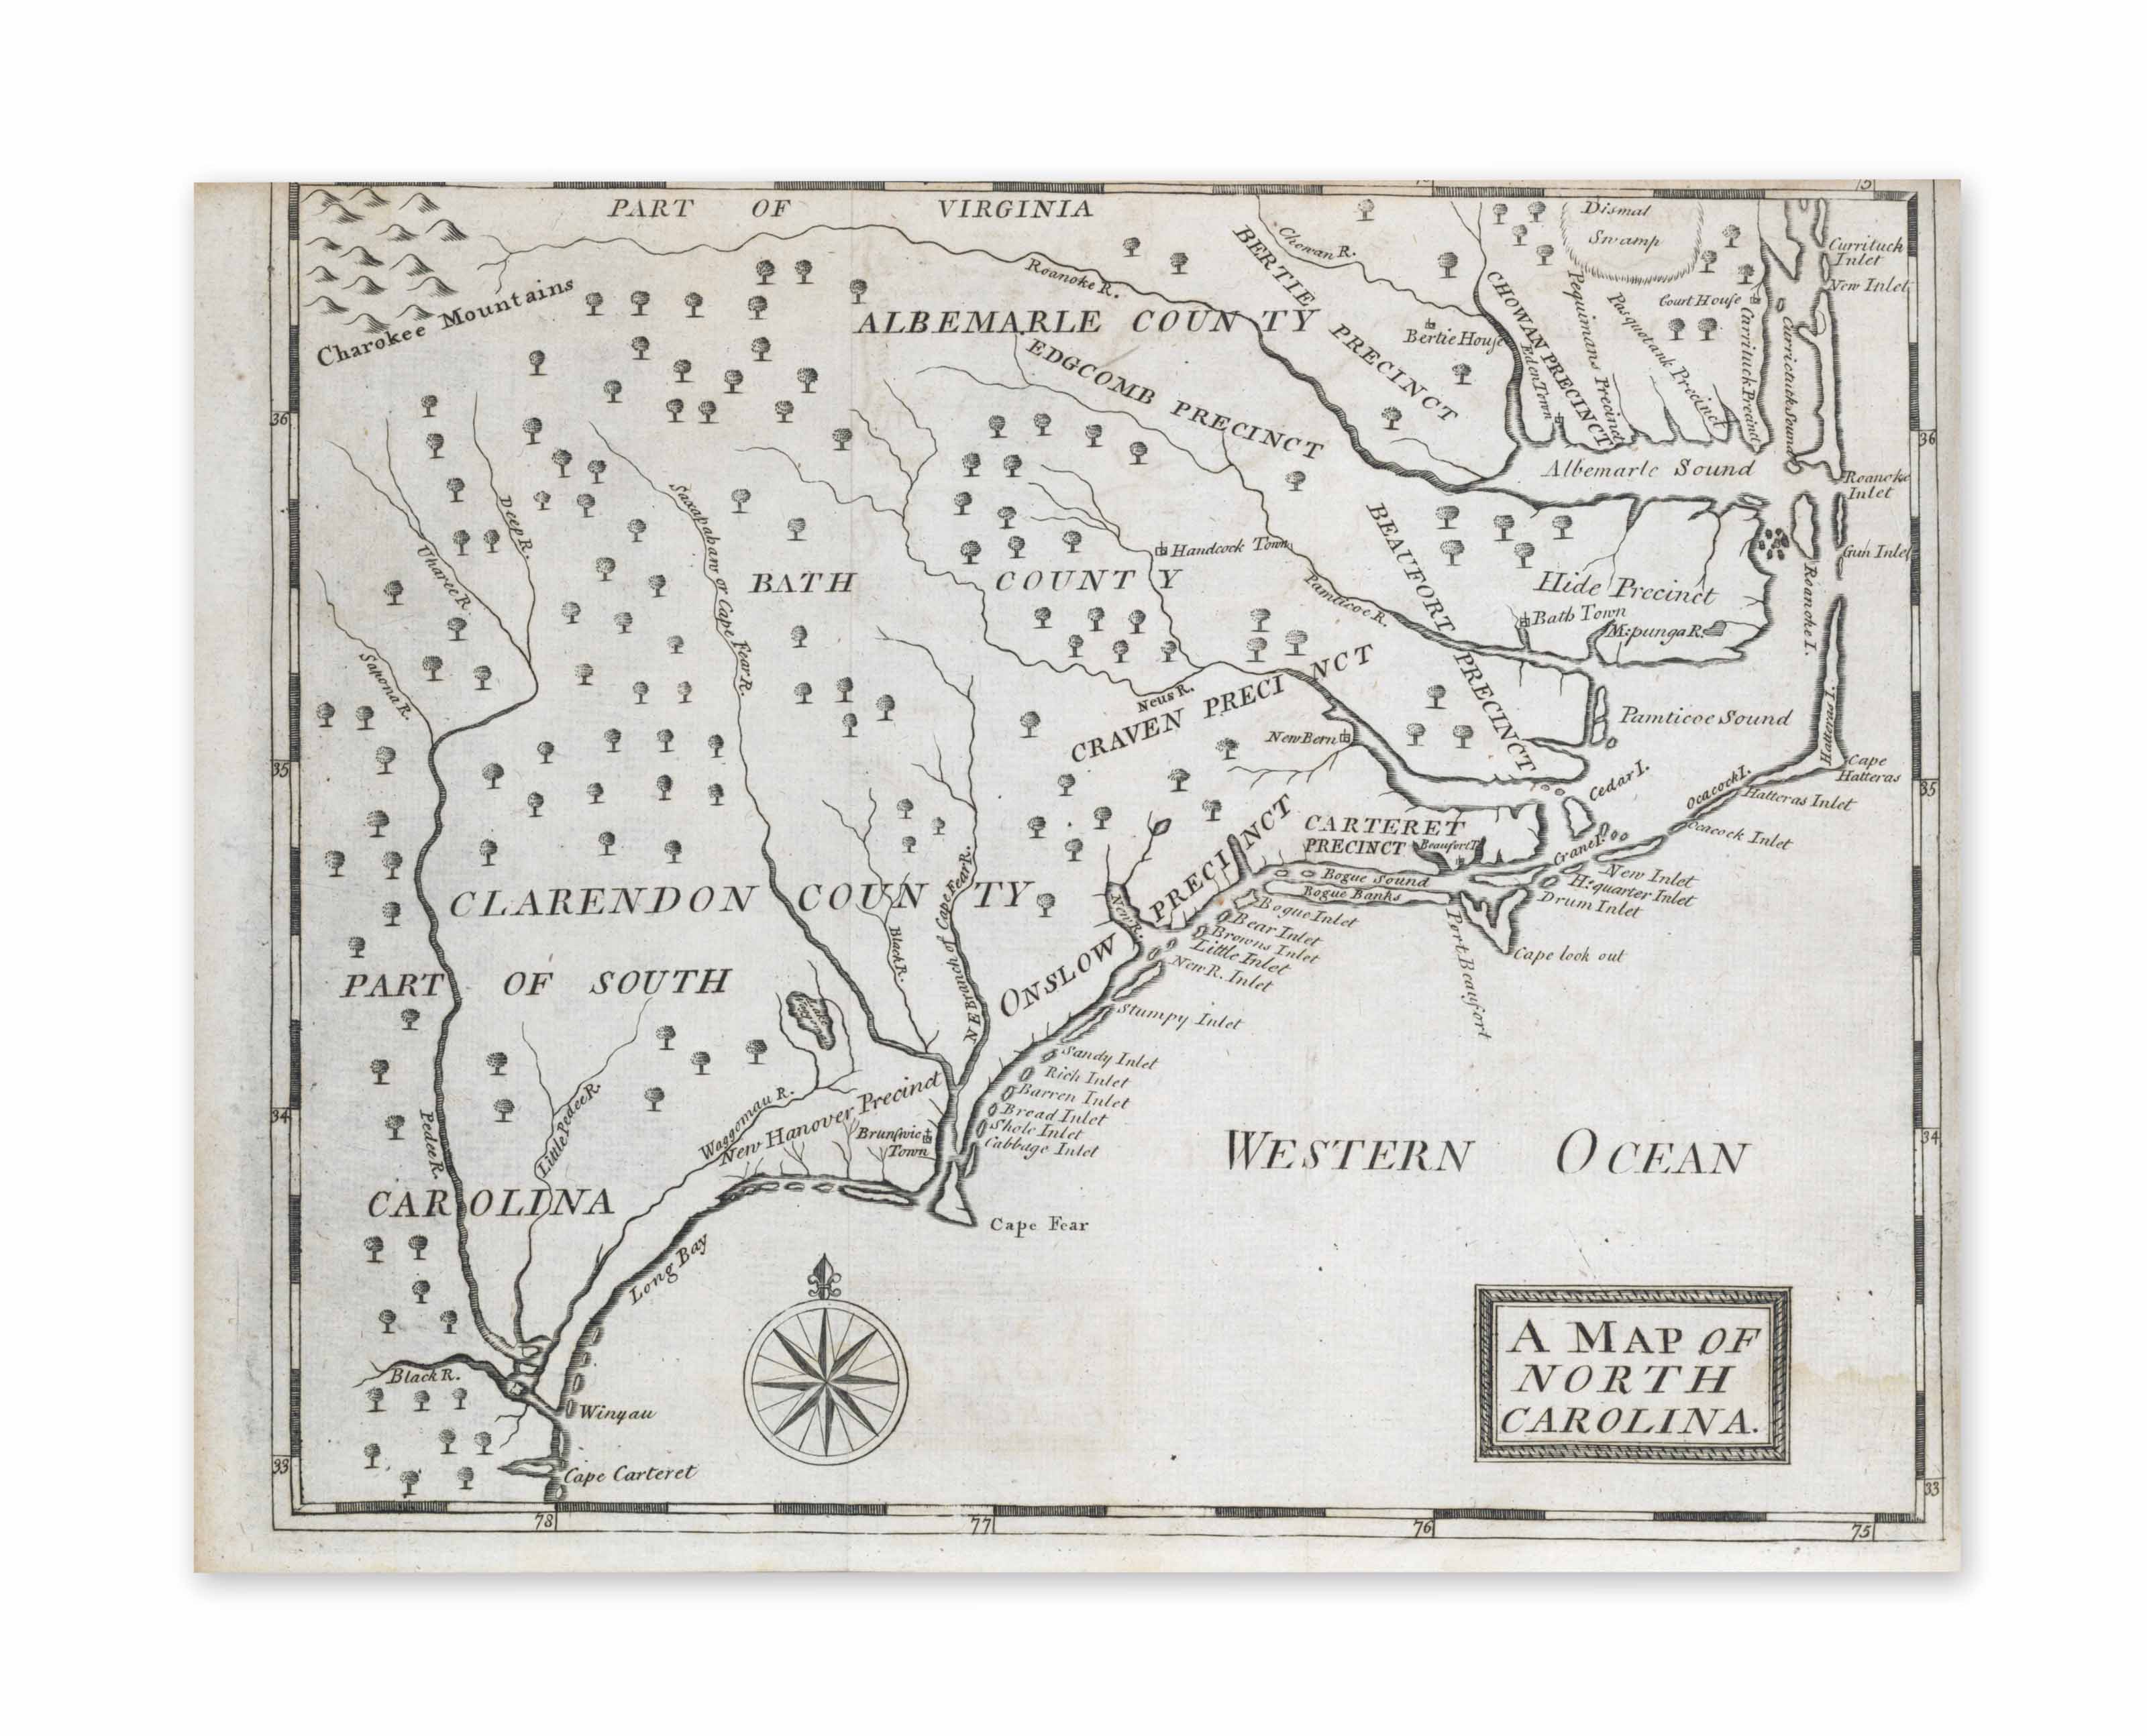 BRICKELL, John (c.1710-1745). The natural history of North-Carolina. With an account of the trade, manners, and customs of the Christian and Indian inhabitants. Illustrated with copper-plates, whereon are curiously engraved the map of the country, several strange beasts, birds, fishes, snakes, insects, trees, and plants. Dublin: James Carson, 1737.